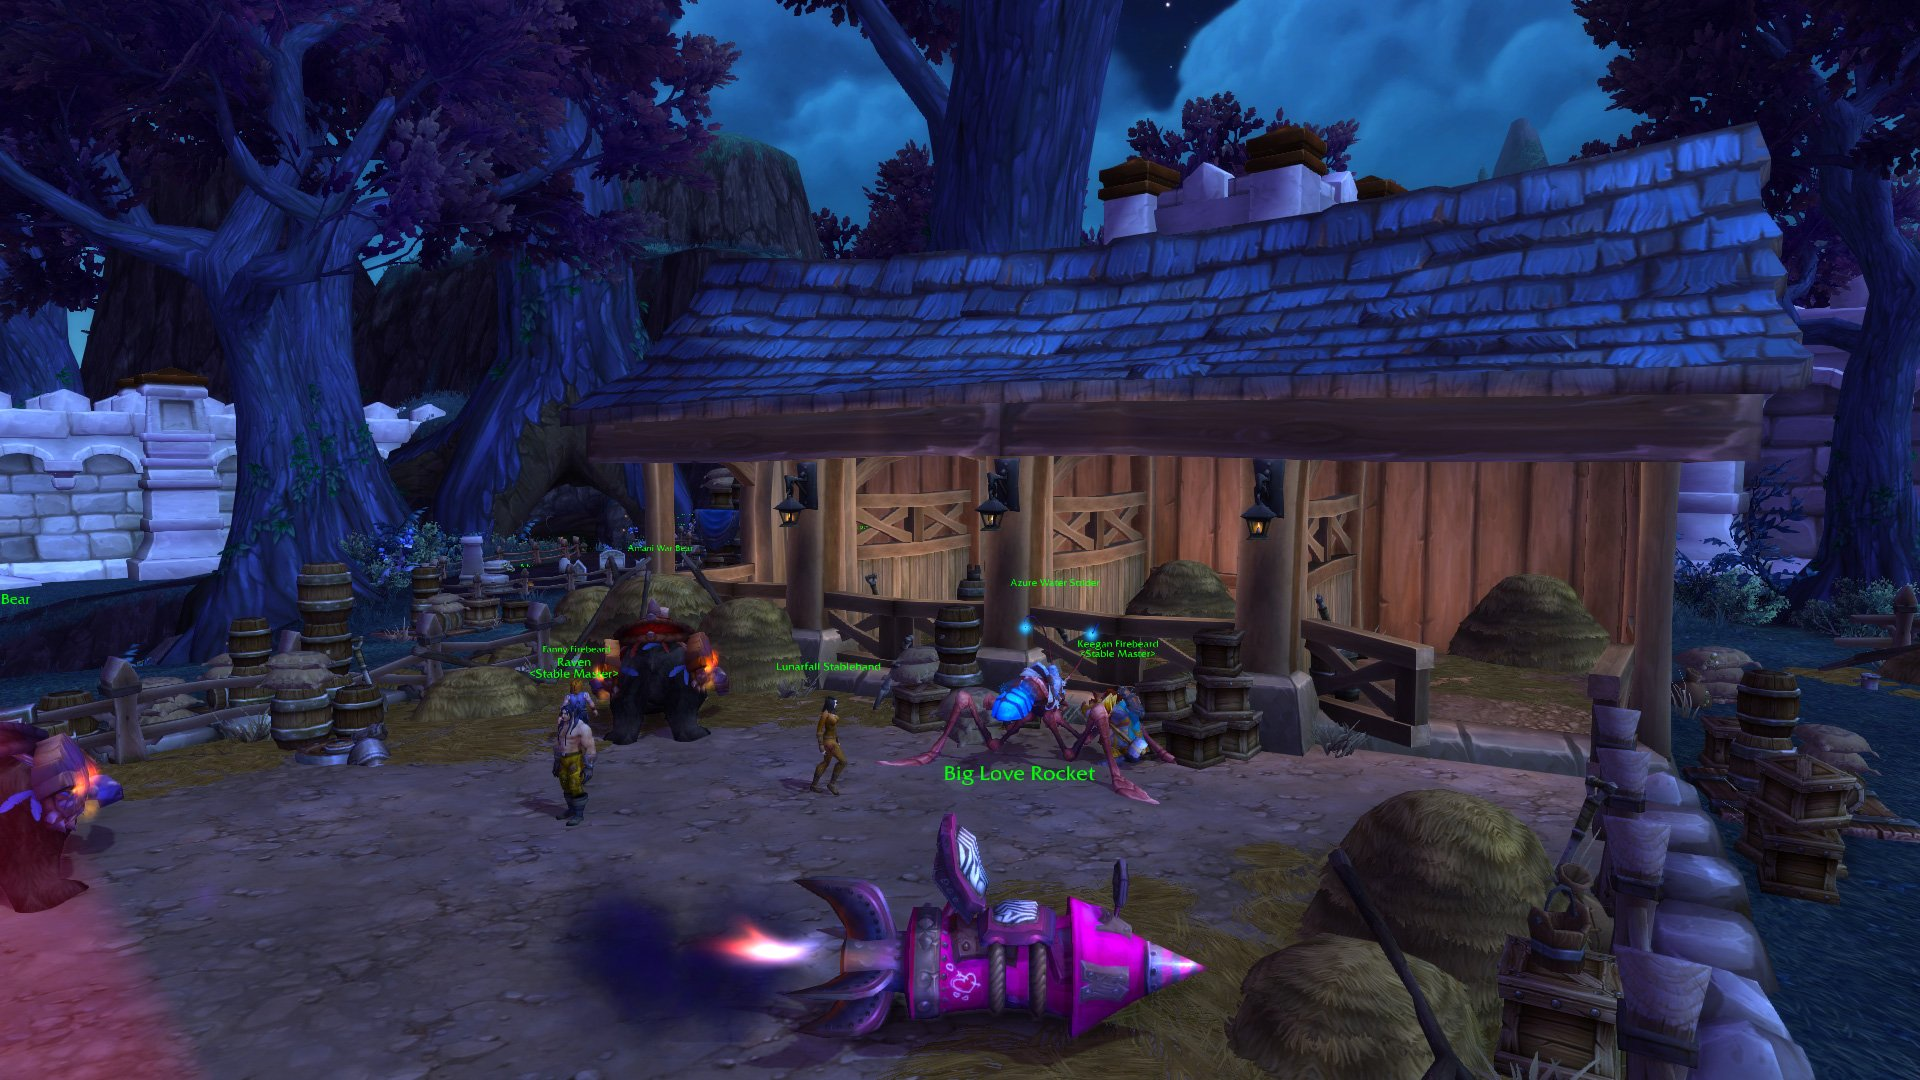 Stormwind repairs stables blazing wings updated garrison guides level 2 horde screenshots malvernweather Image collections